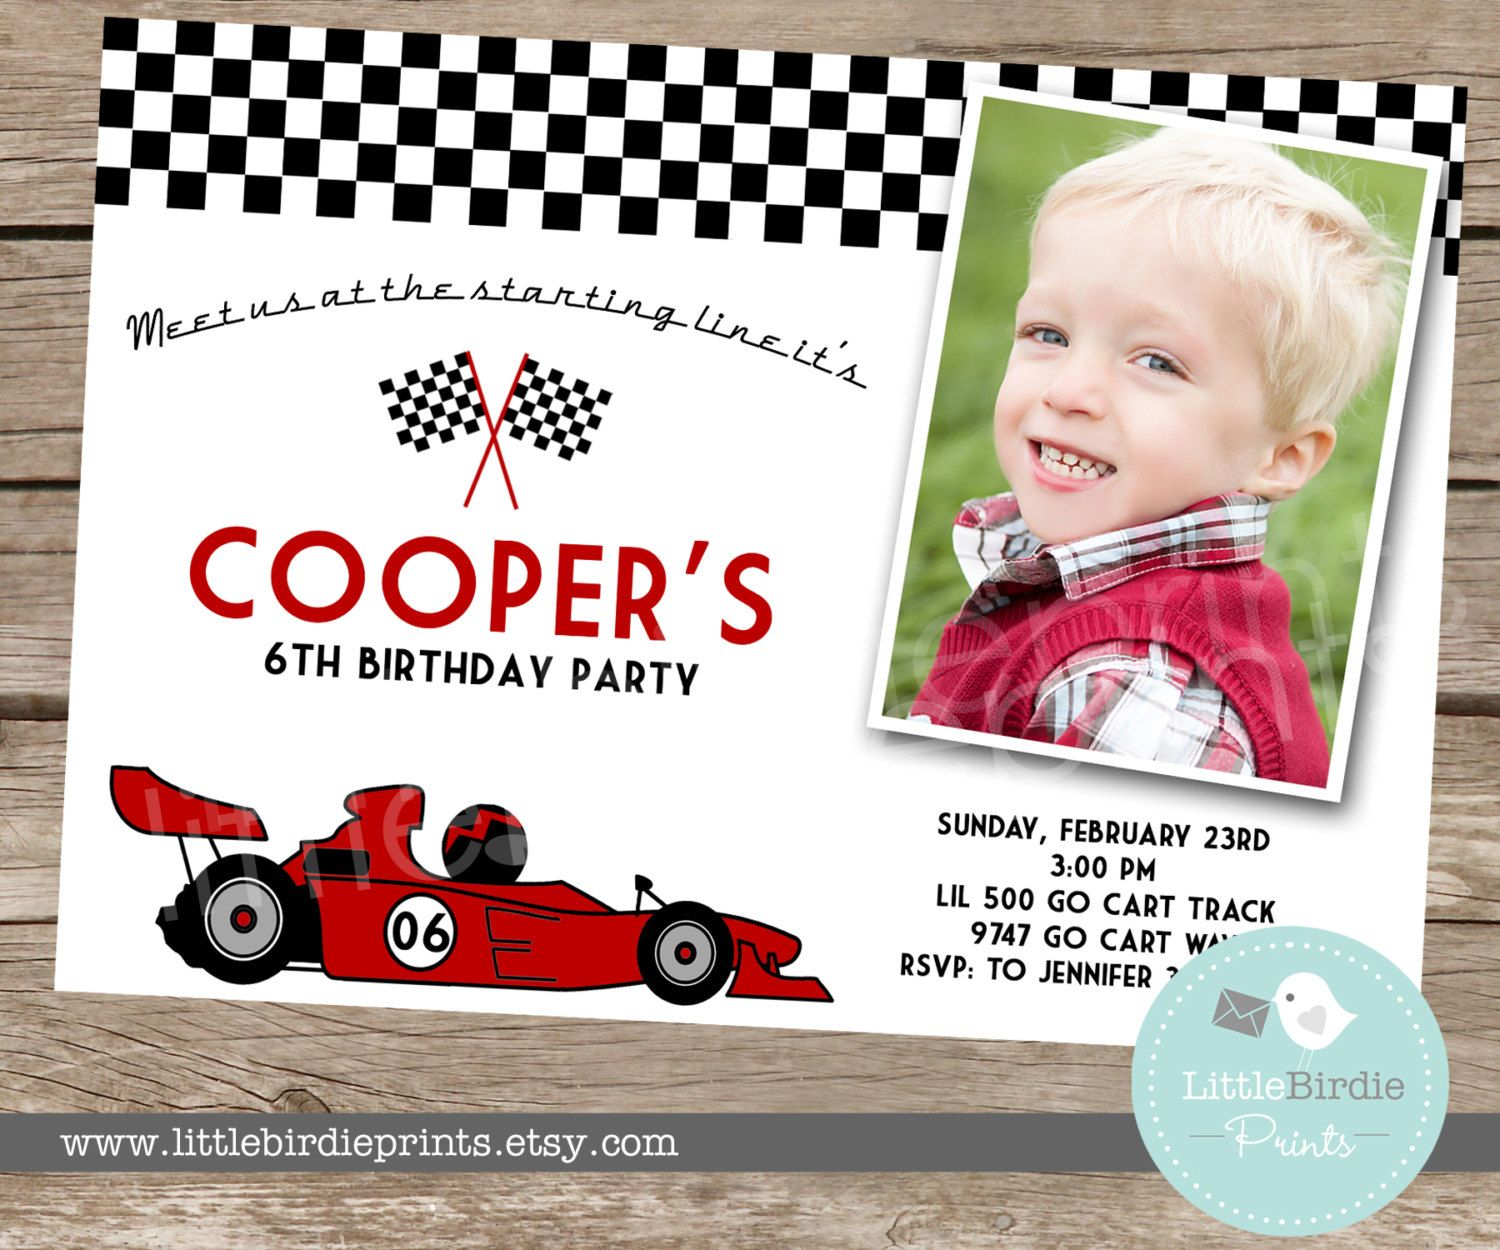 Race car invitation birthday party for boy by littlebirdieprints race car invitation birthday party for boy by littlebirdieprints 1500 stopboris Gallery